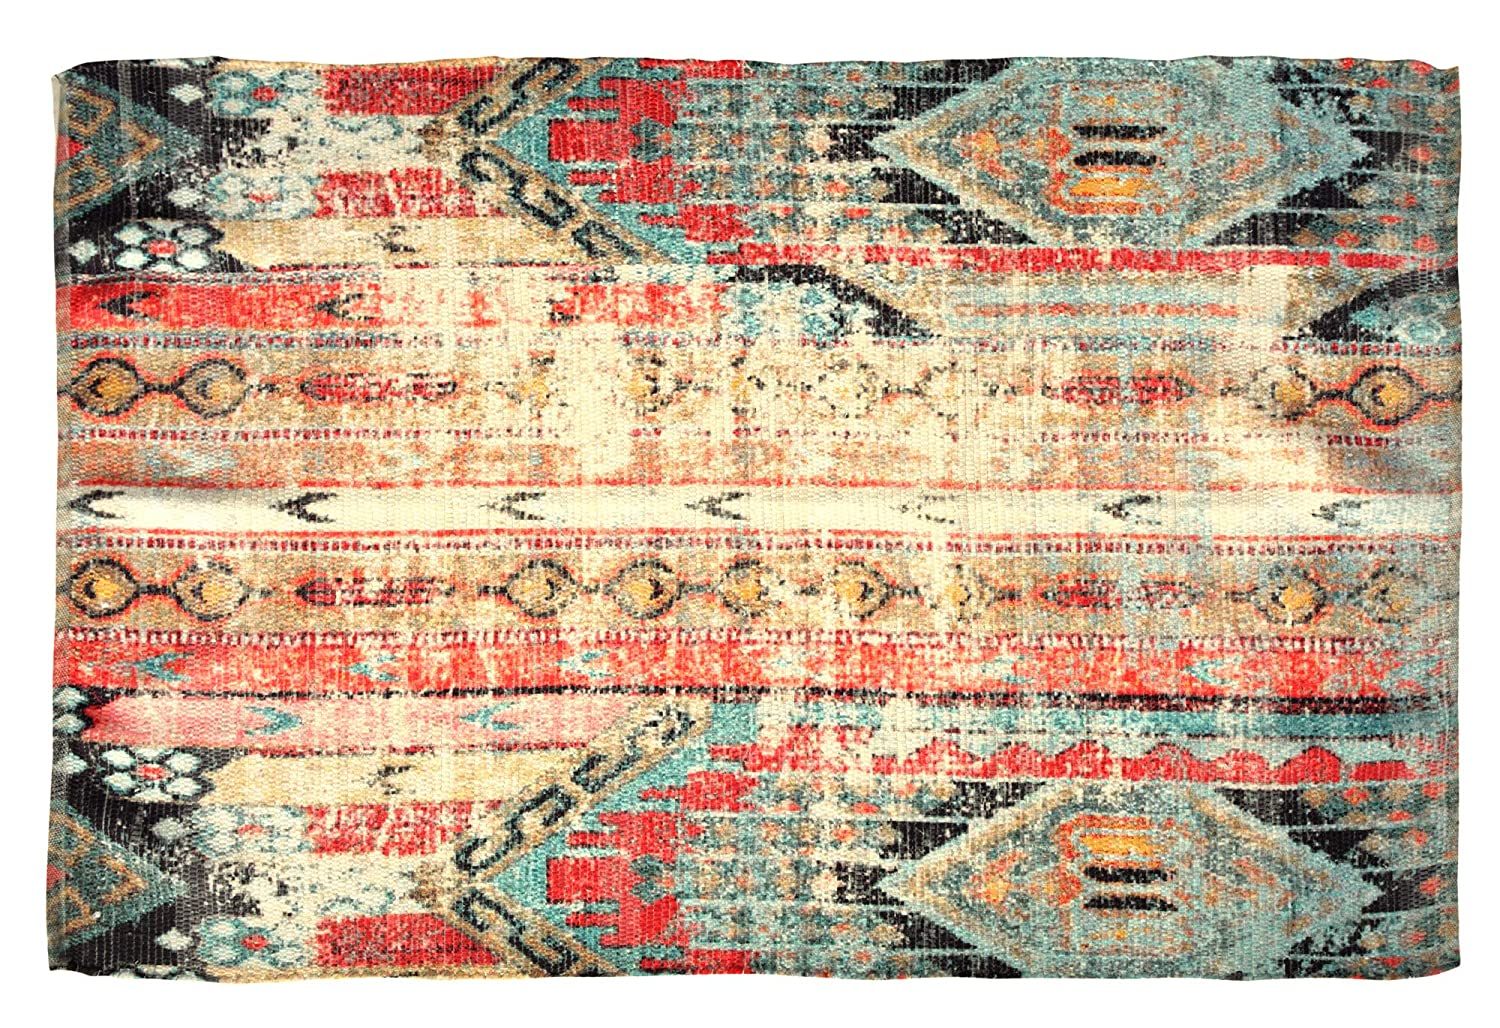 HILLFAIR - 5 x 8 Ft Area Rugs - 100% Handwoven Chindi Area Rugs - Print On Chindi Handwoven Rugs - Bohemian Design Area Rugs - Requires Rugs Pad - Distressed Look Area Rugs HILLFAIR-RUGS-5X8-RED